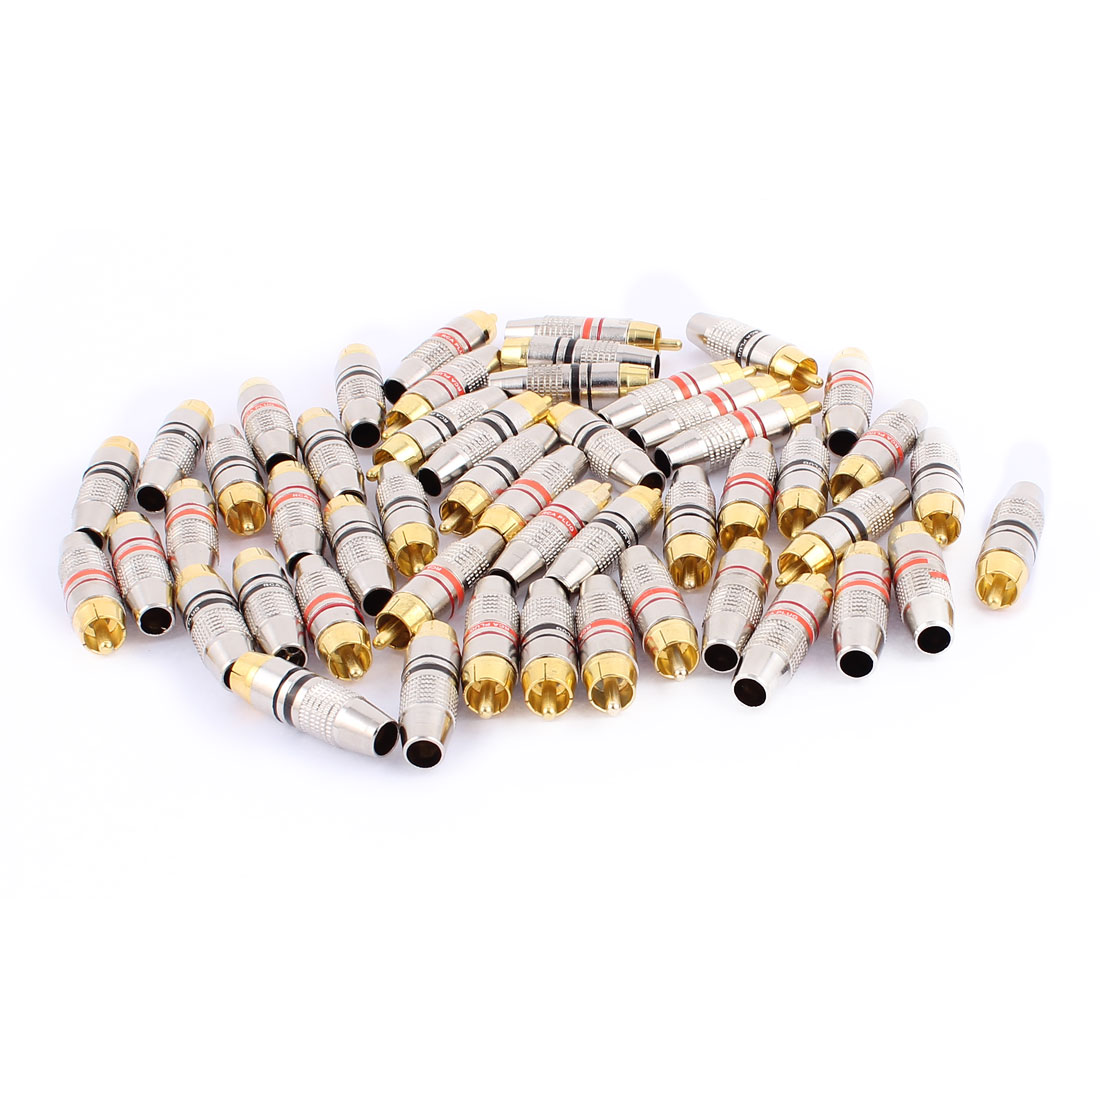 50-Pcs-Metal-RCA-Male-Plug-Audio-Coaxial-Wire-Connector-Coupler